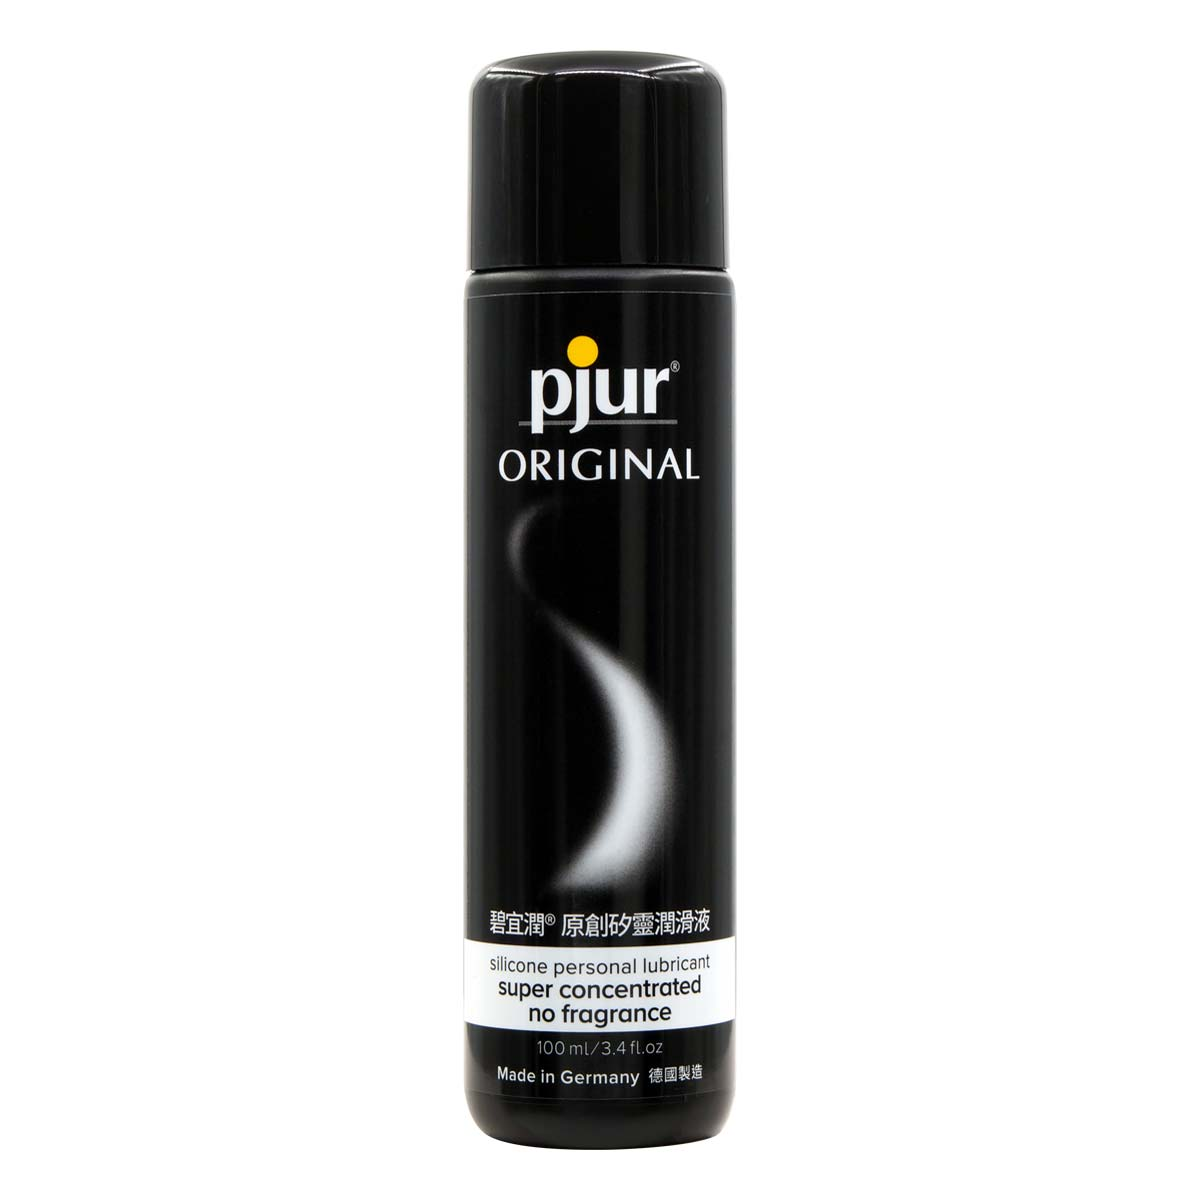 pjur ORIGINAL 100ml Silicone-based Lubricant